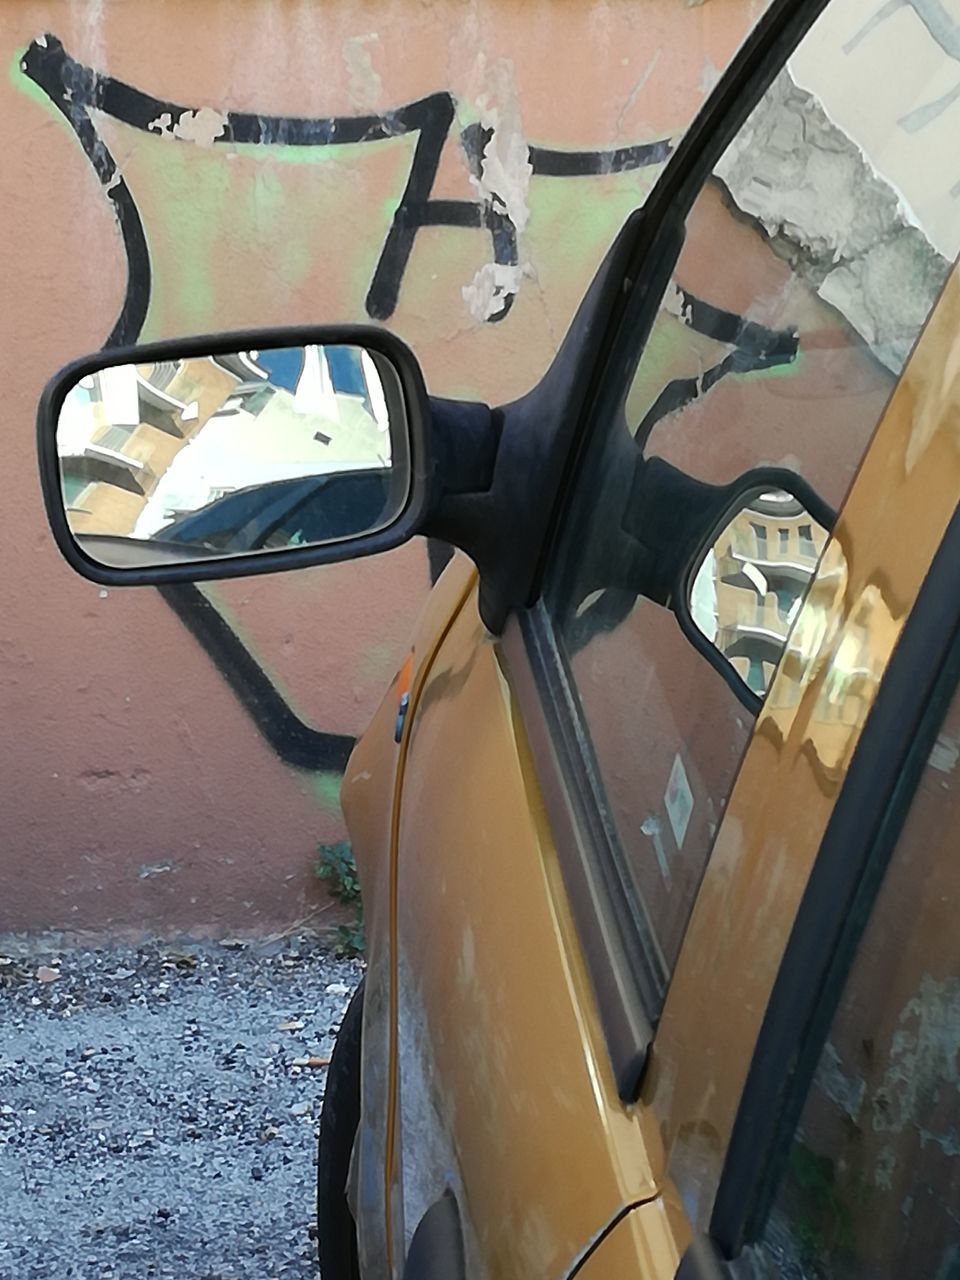 transportation, mode of transport, land vehicle, reflection, side-view mirror, car, day, no people, outdoors, close-up, nature